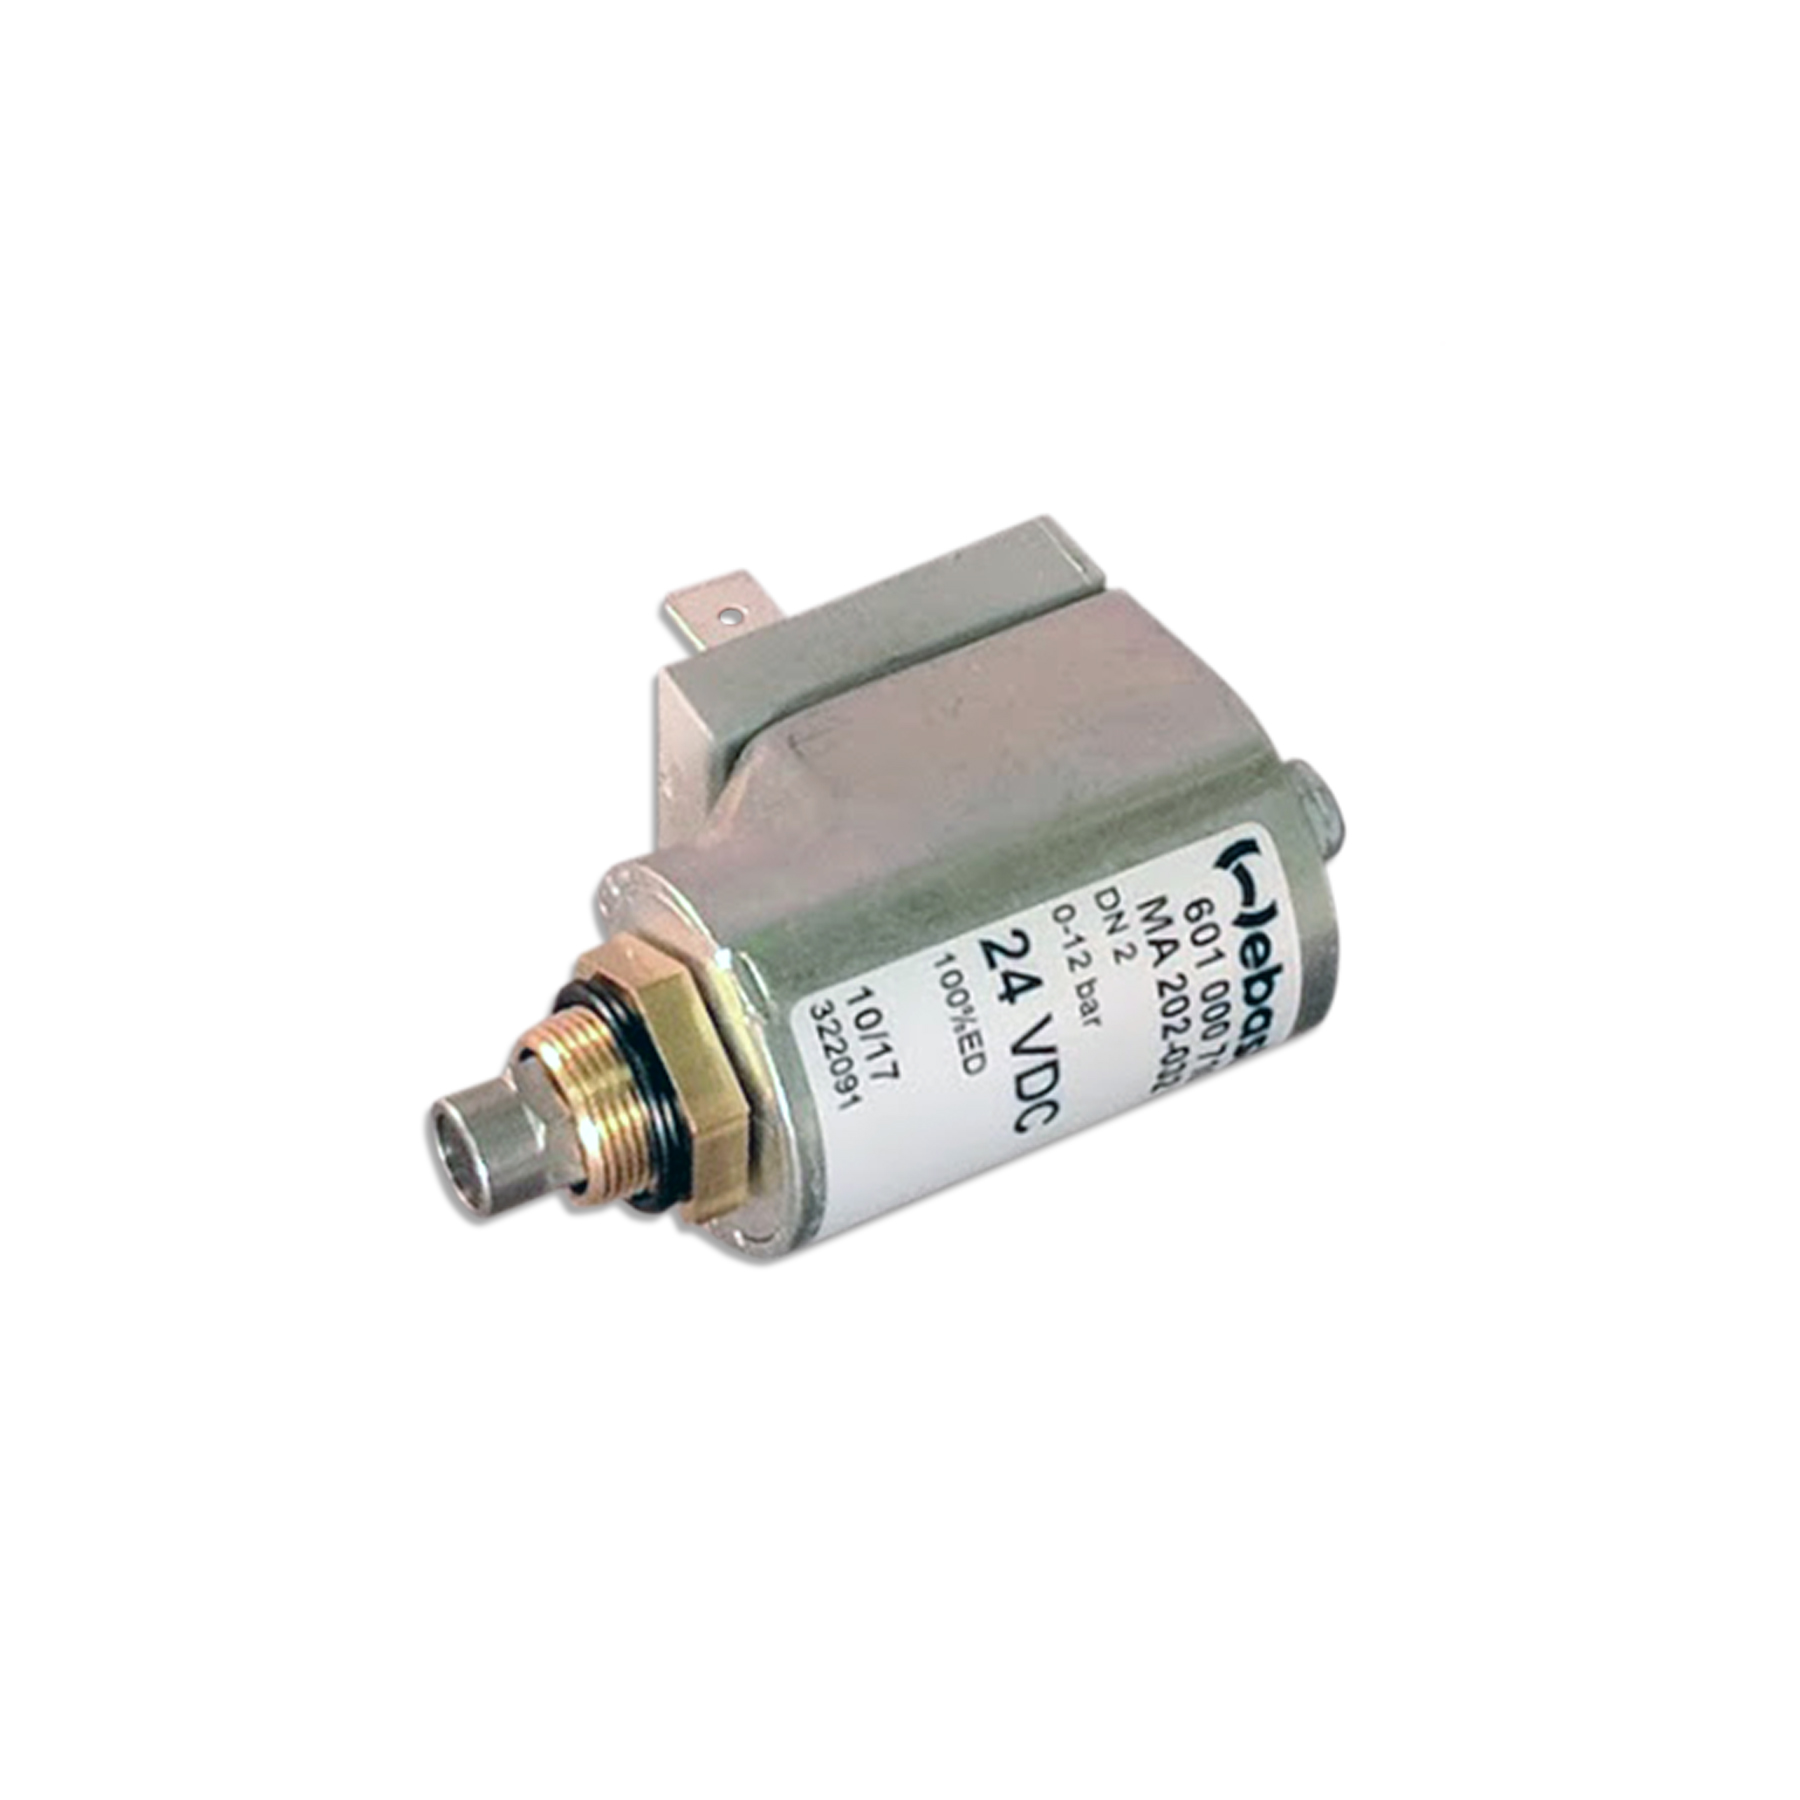 24 VDC Fuel Solenoid Valve for DBW-300